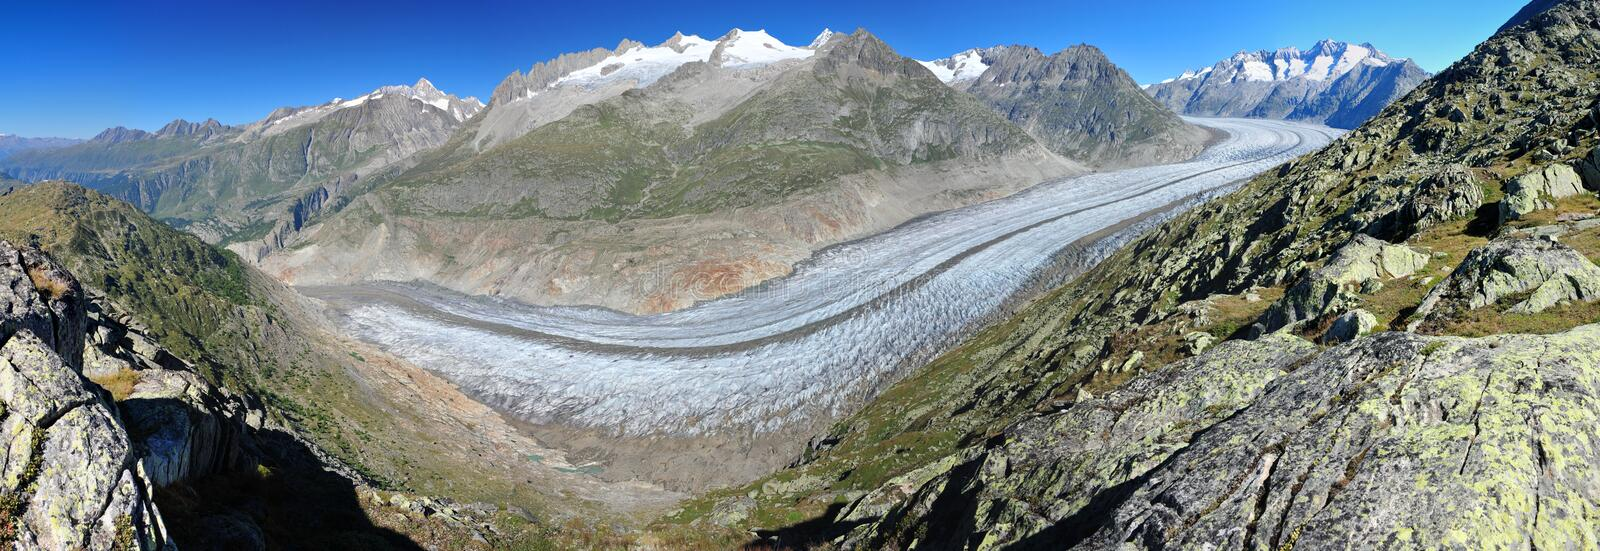 Download Panorama Of Aletsch Glacier And Summits Of Valais Stock Photo - Image of peaks, alpinism: 15744226